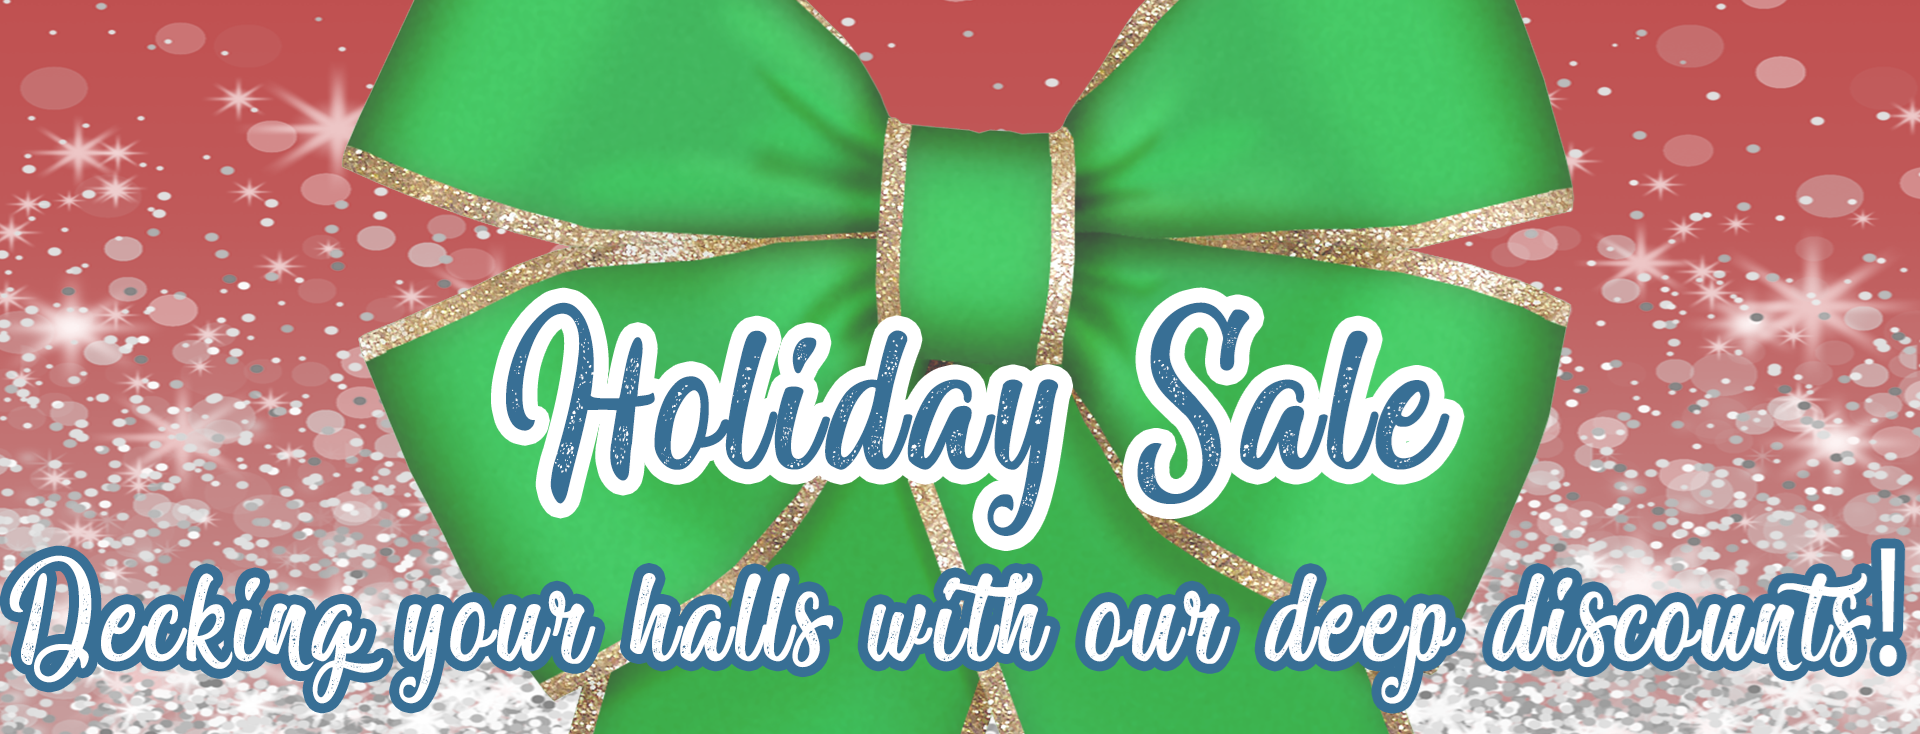 Our Holiday Sale is Now